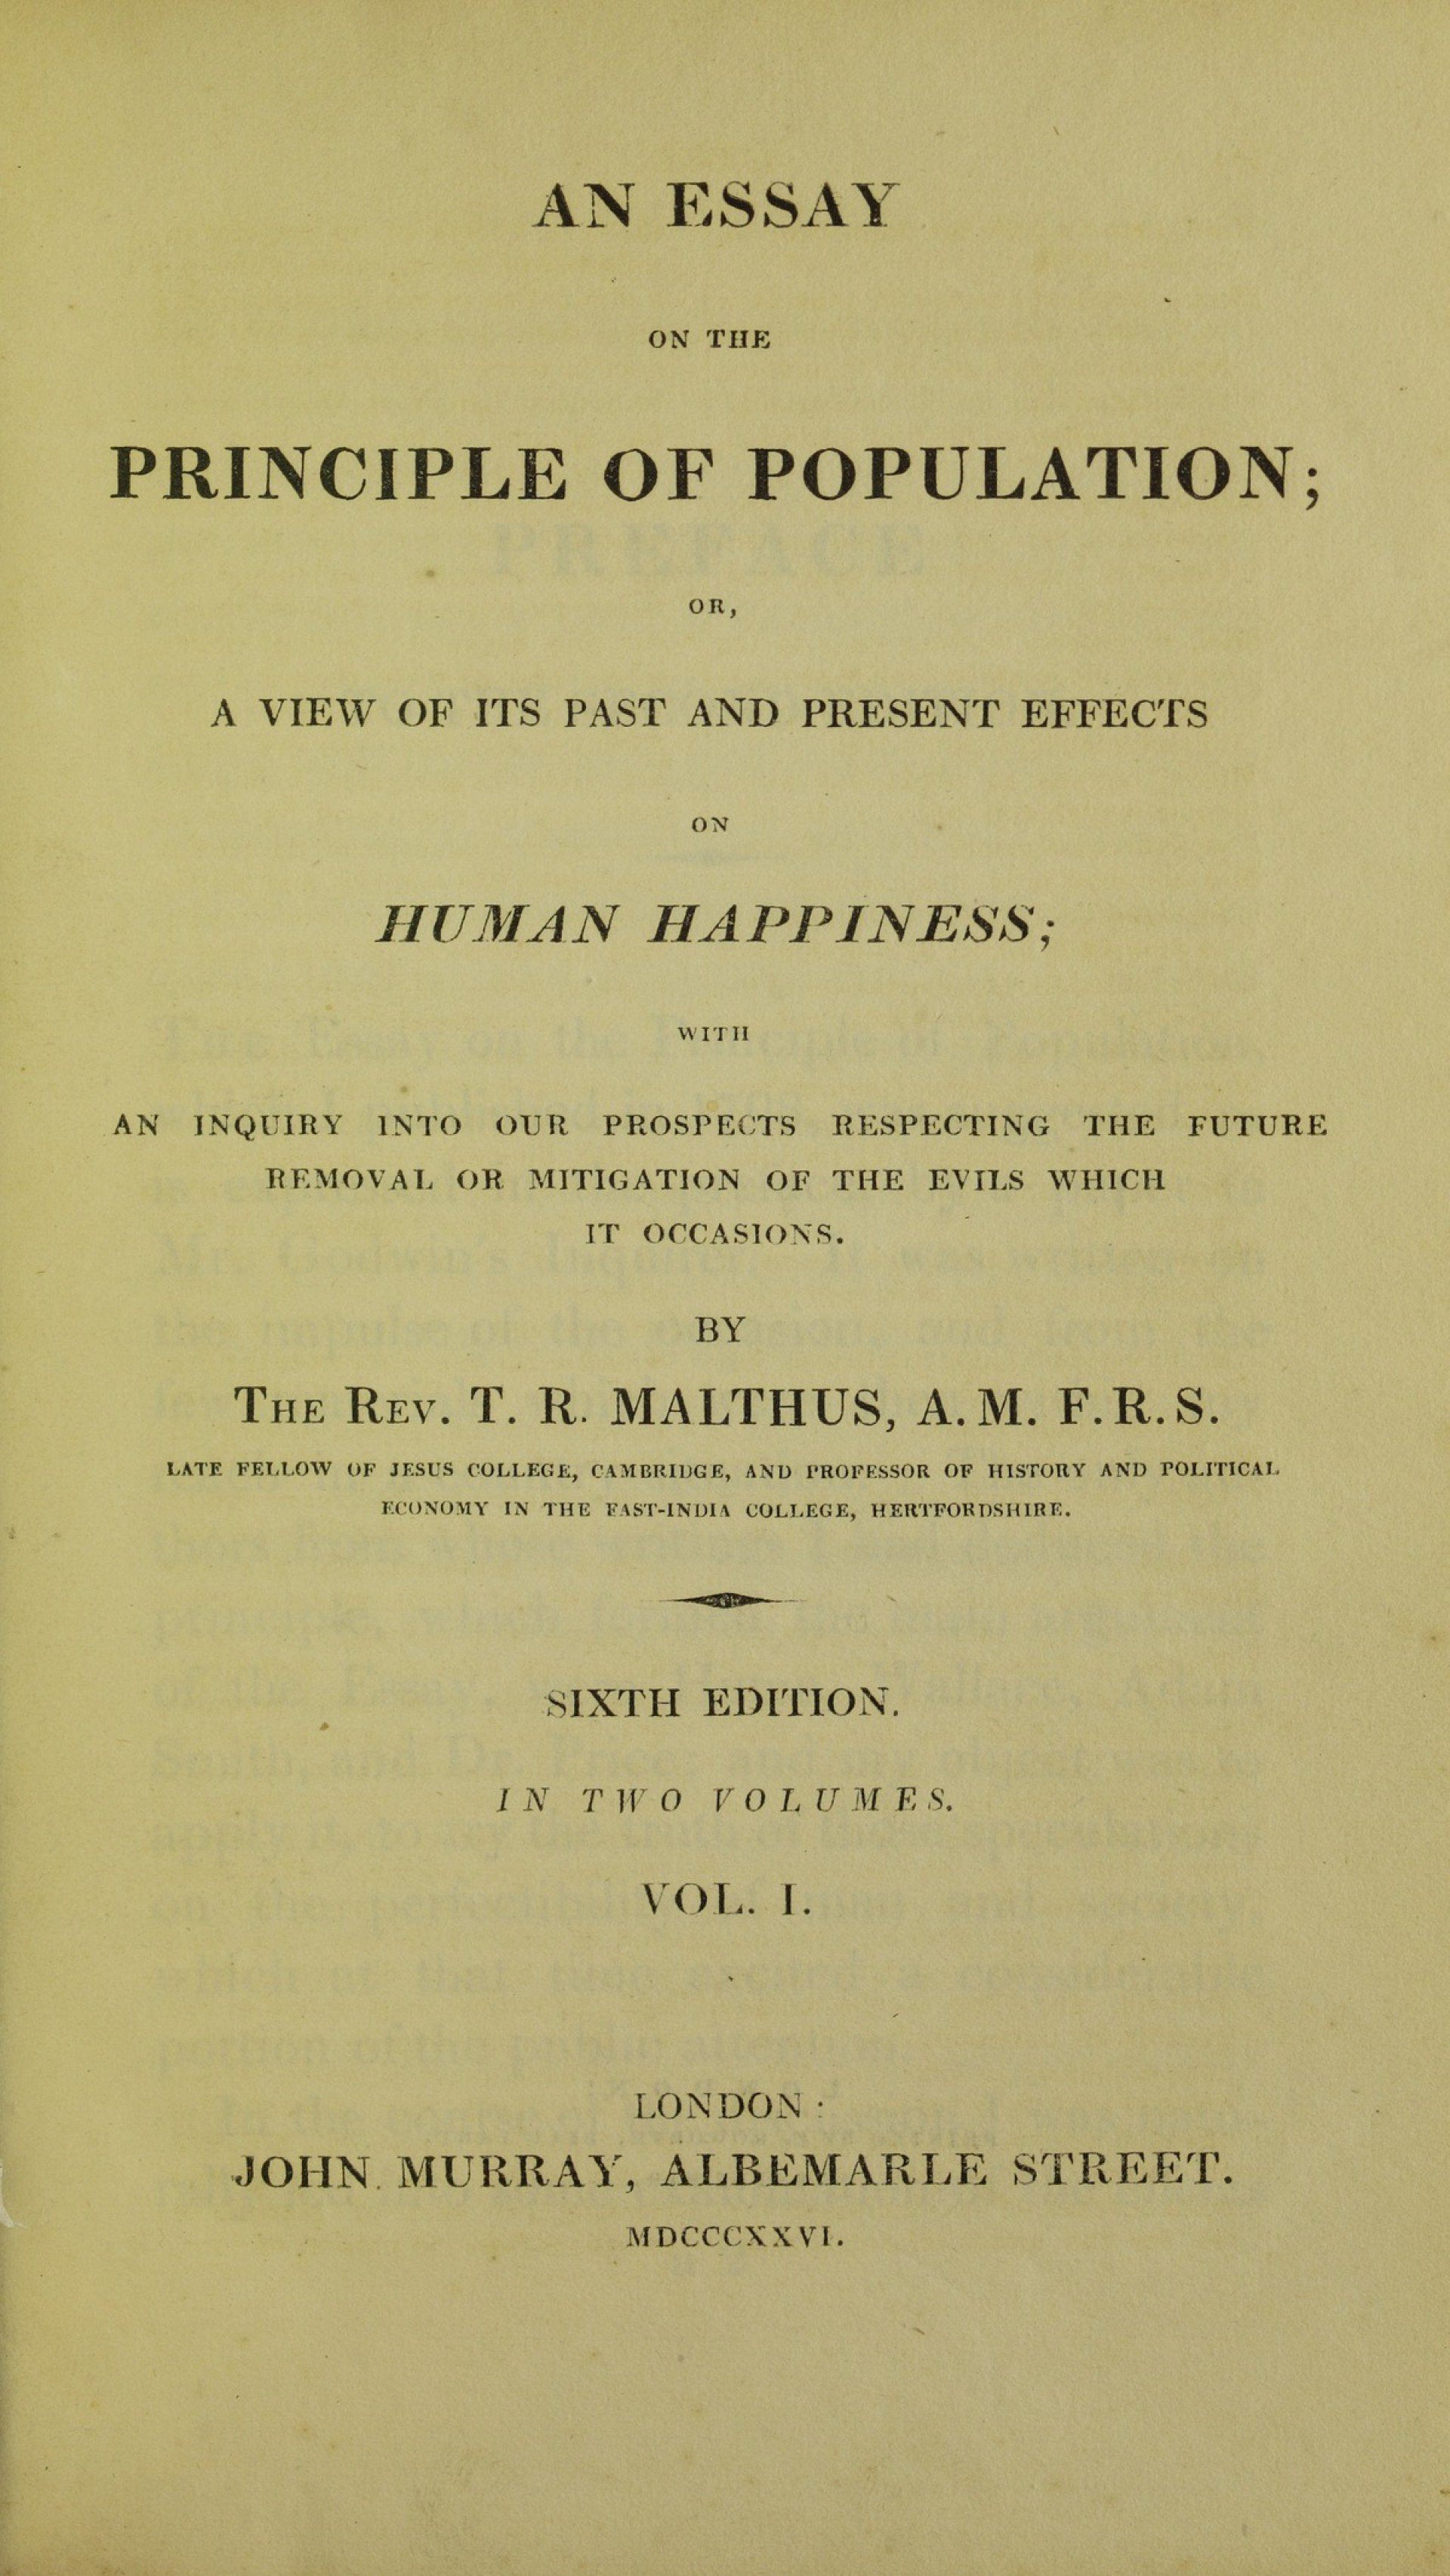 004 Thomas Malthus An Essay On The Principle Of Population Example Lossy Page1 1200px  Population2c 1826 5884843 Marvelous Summary Analysis Argued In His (1798) That1920